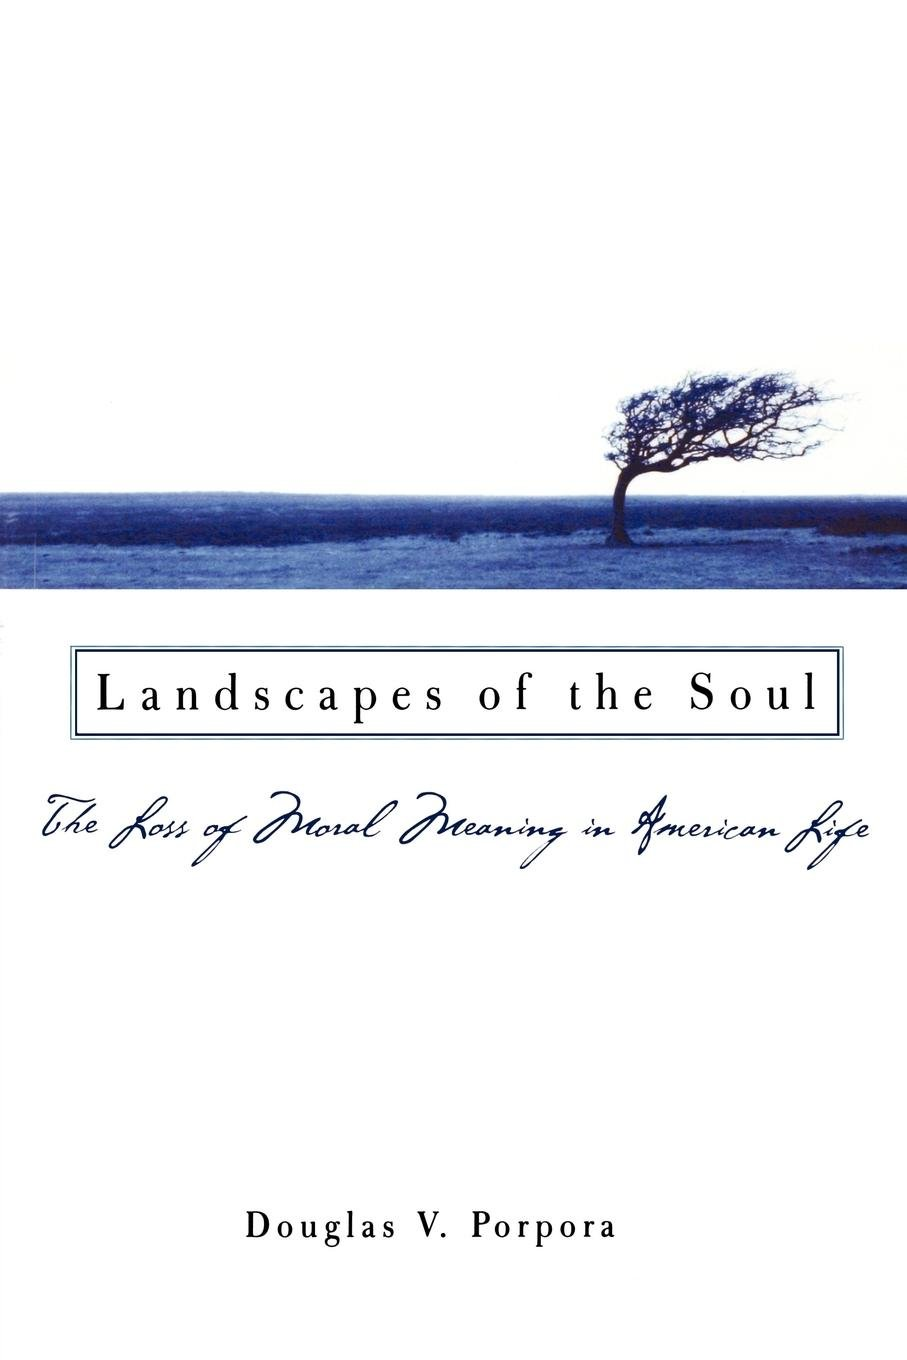 Landscapes of the Soul: The Loss of Moral Meaning in American Life by Oxford University Press